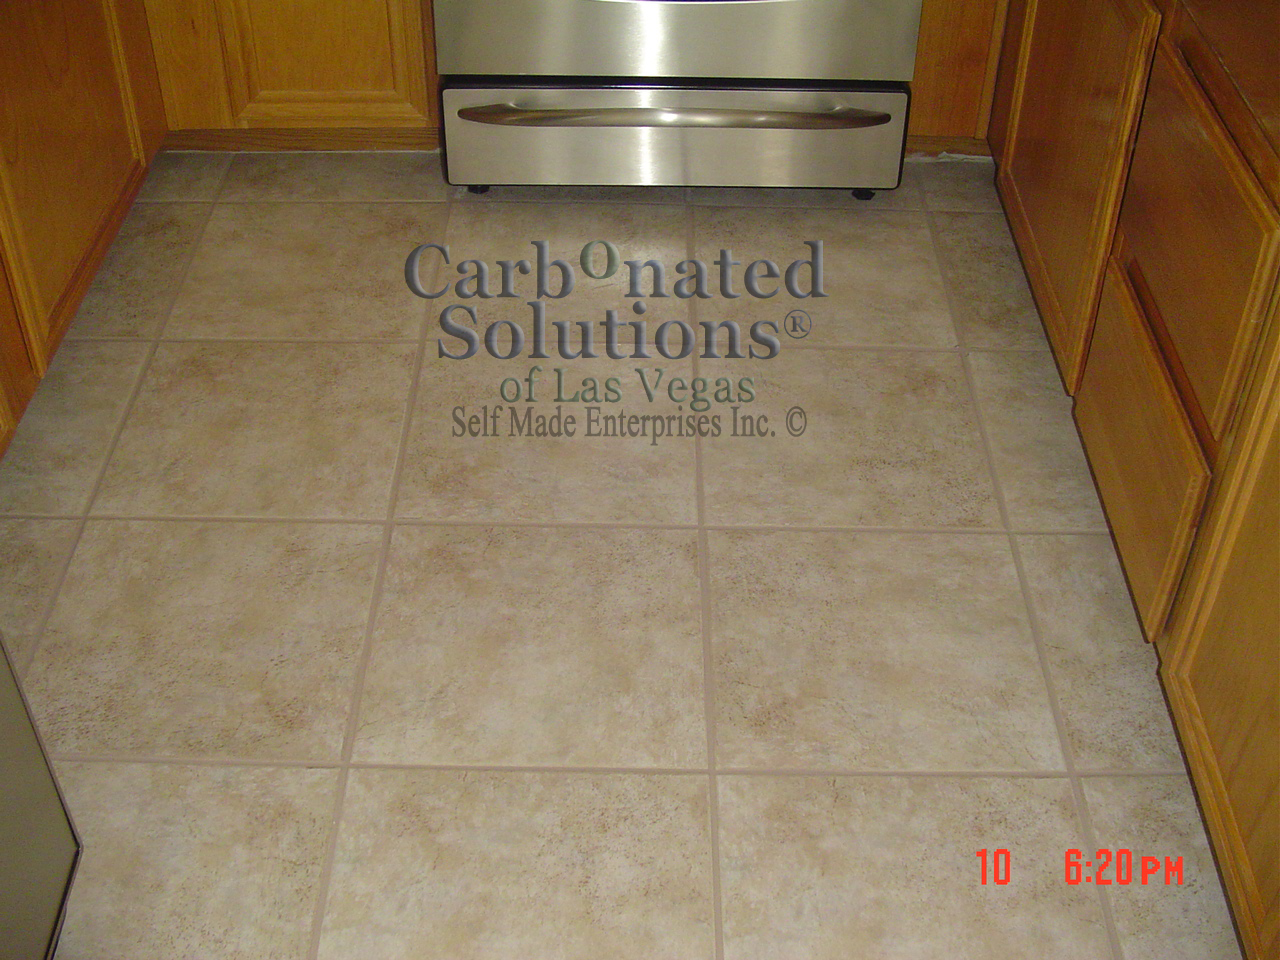 Grout sealing in las vegas by carbonated solutions carbonatedsolutionsoflasvegasgrout sealing in las vegas nv dailygadgetfo Images